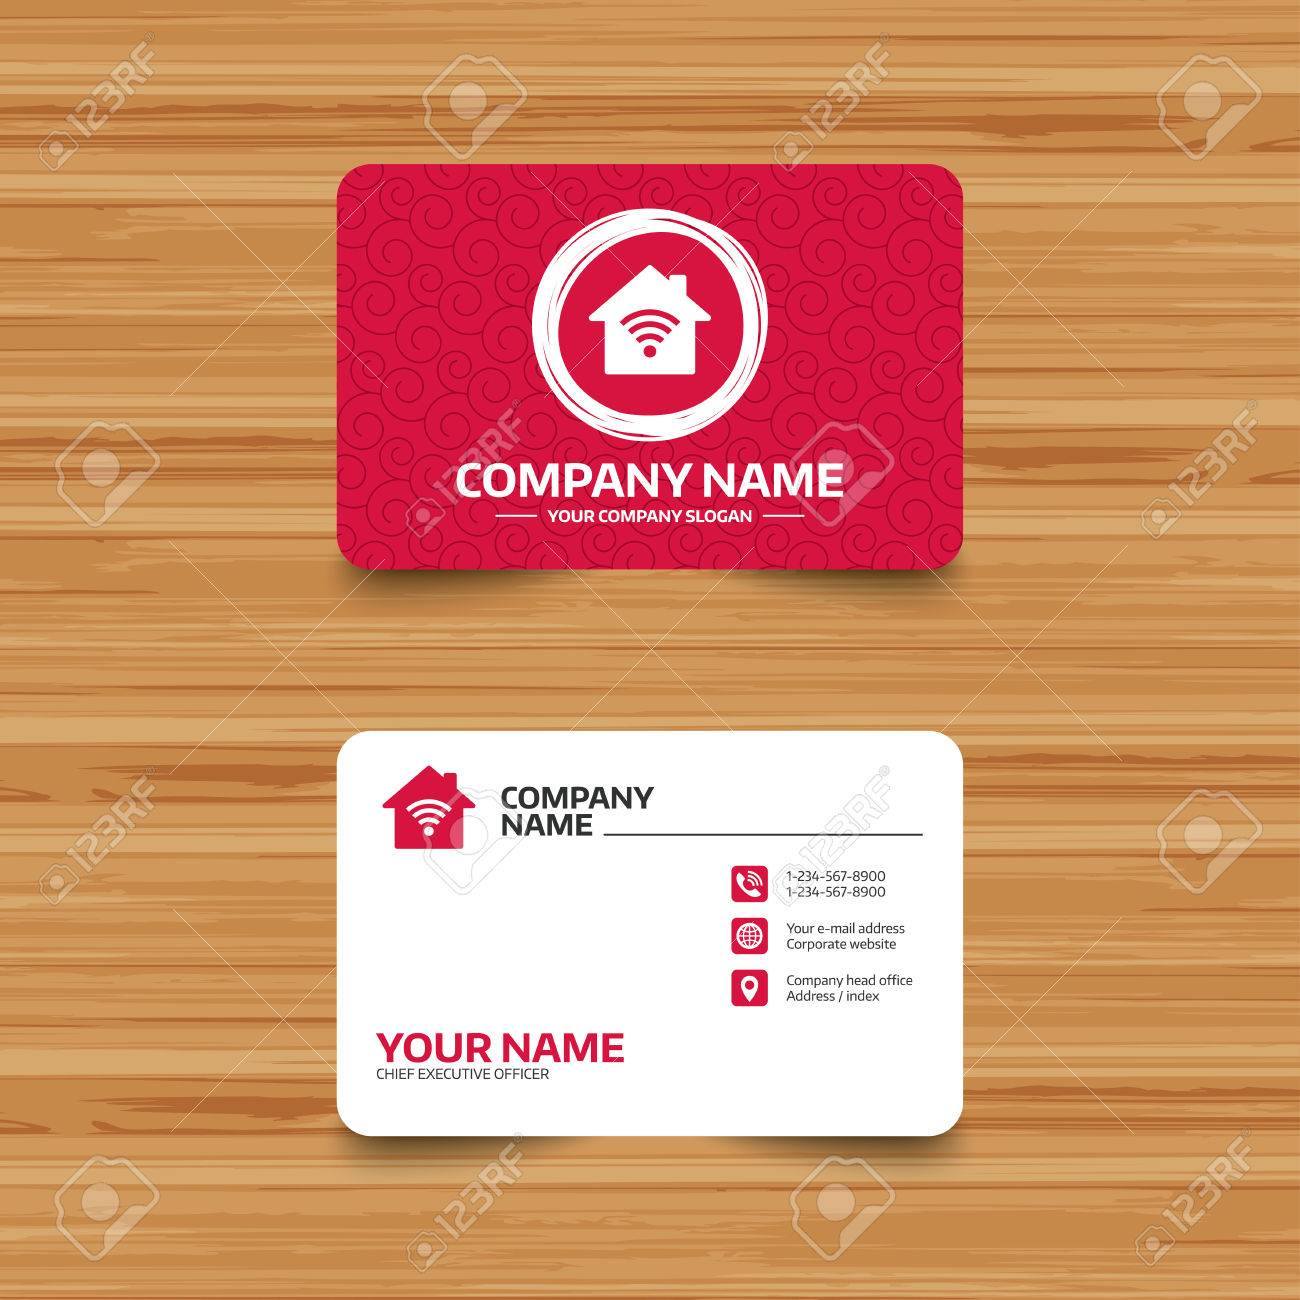 Networking Business Card Templates